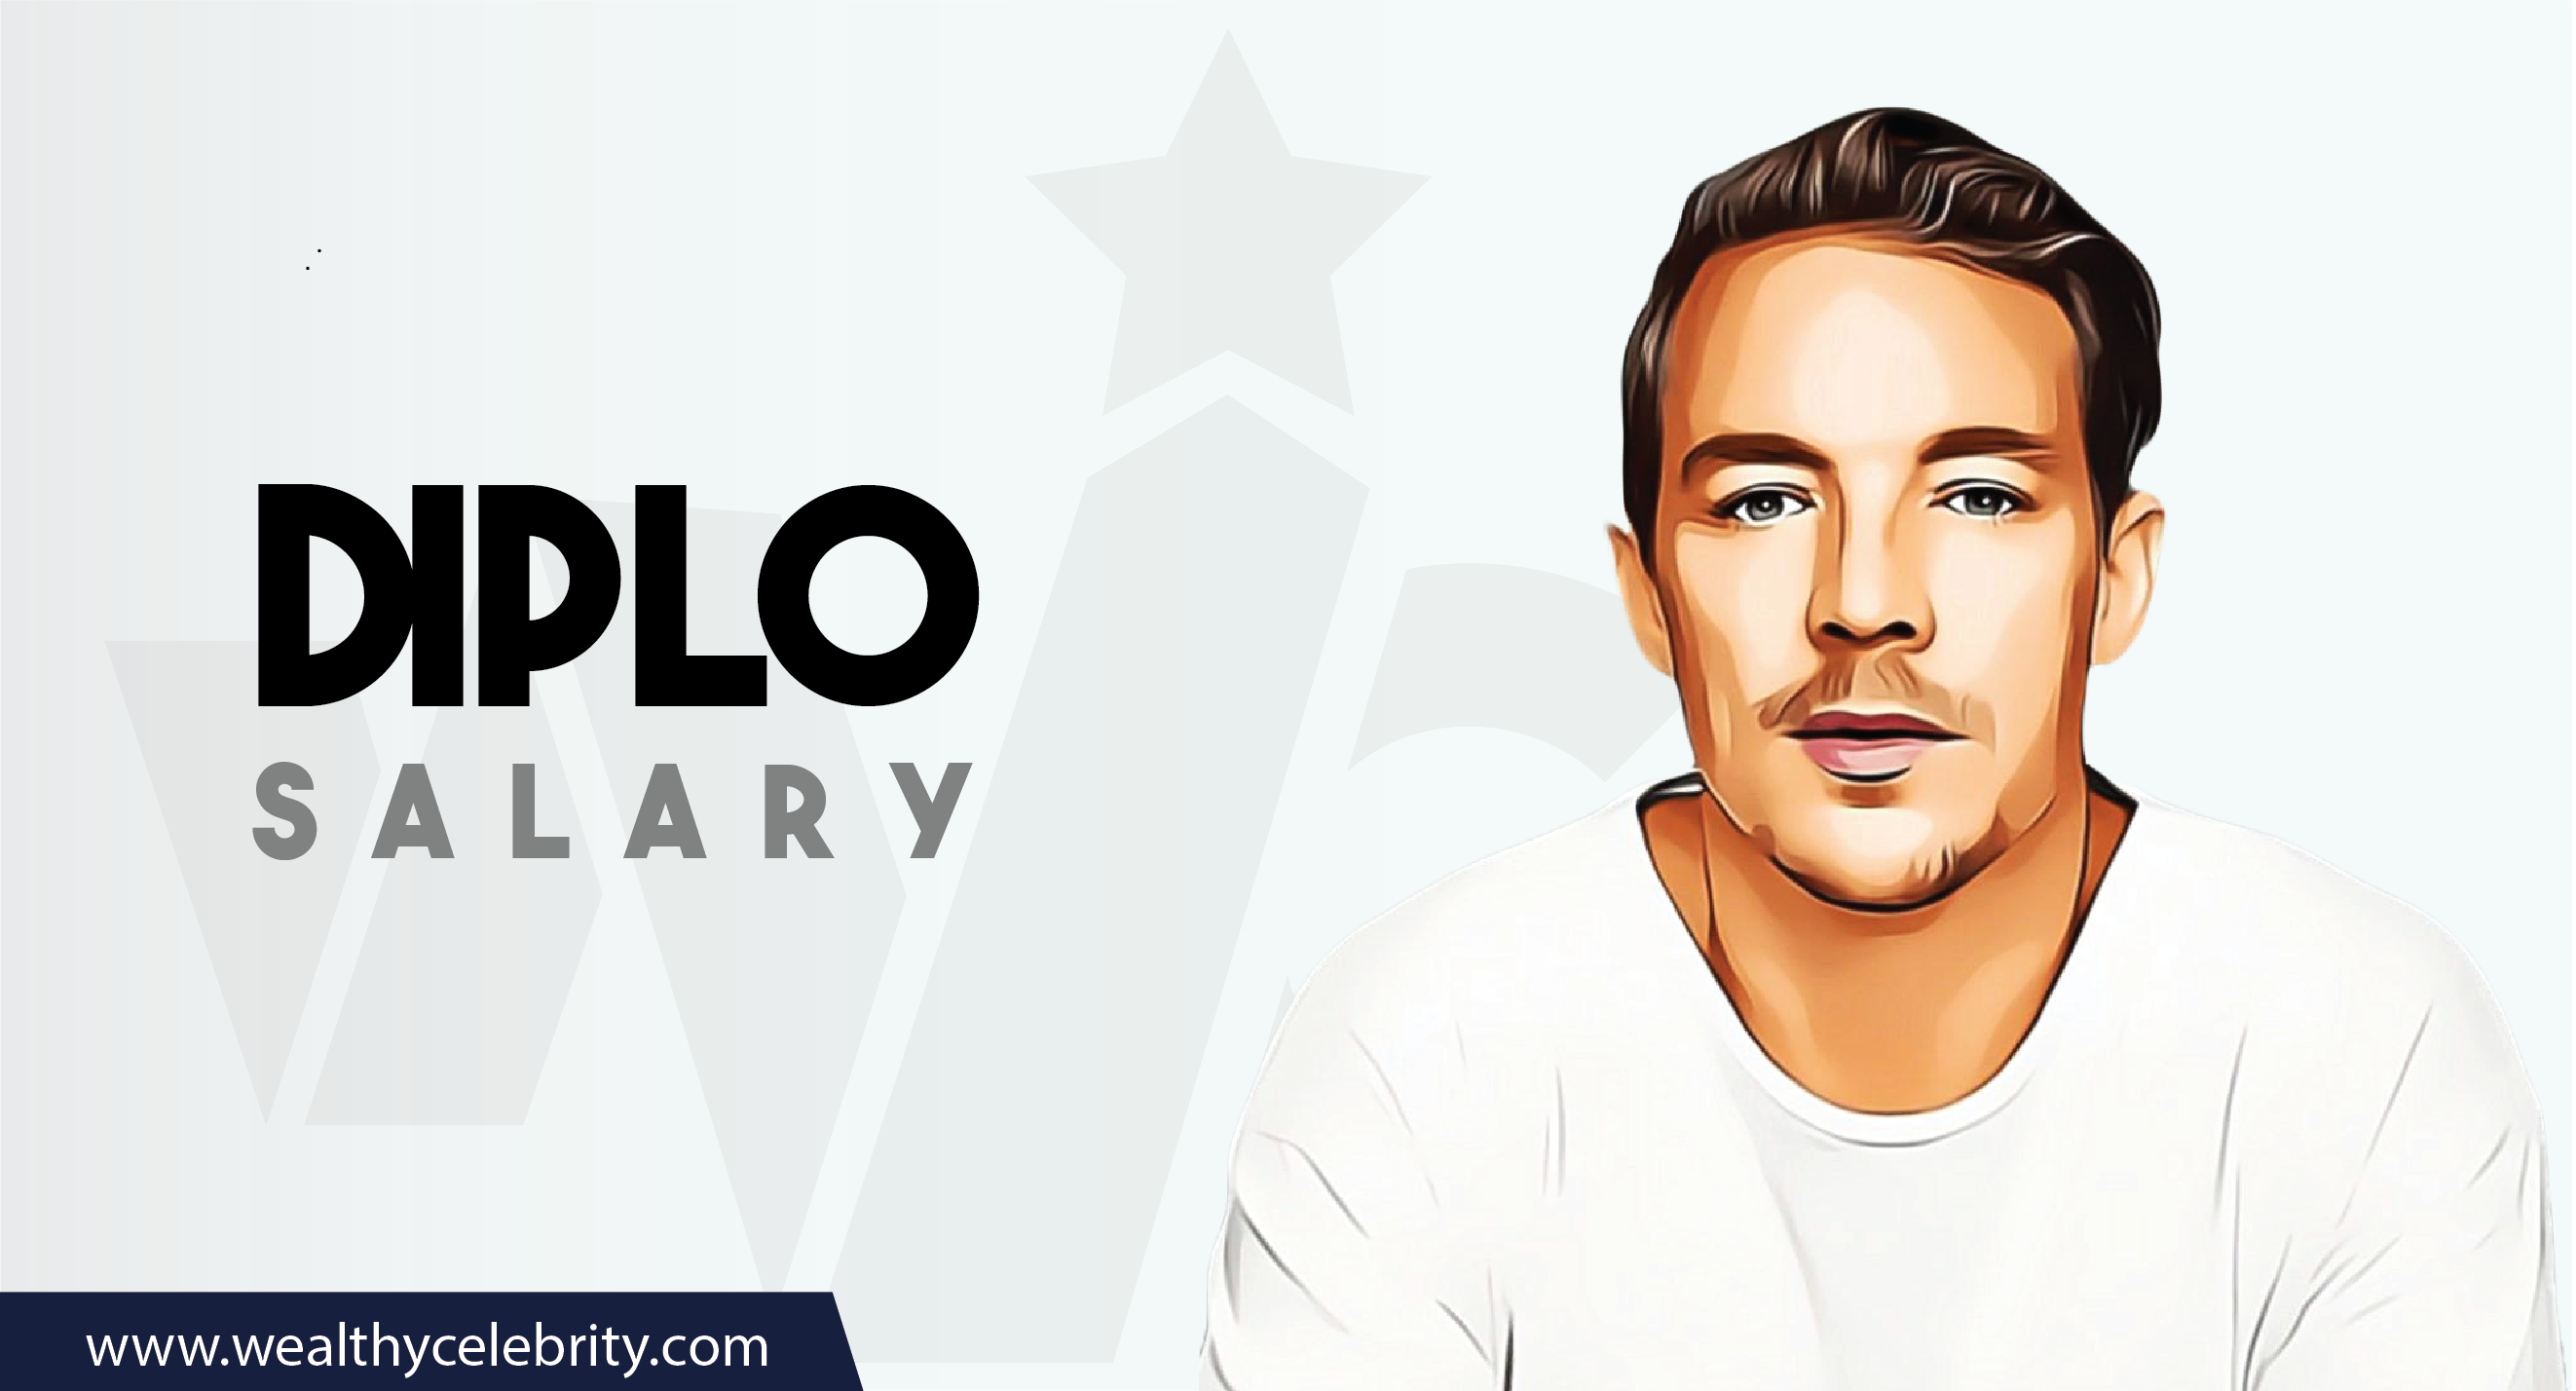 Diplo DJ - Current Salary Net Worth